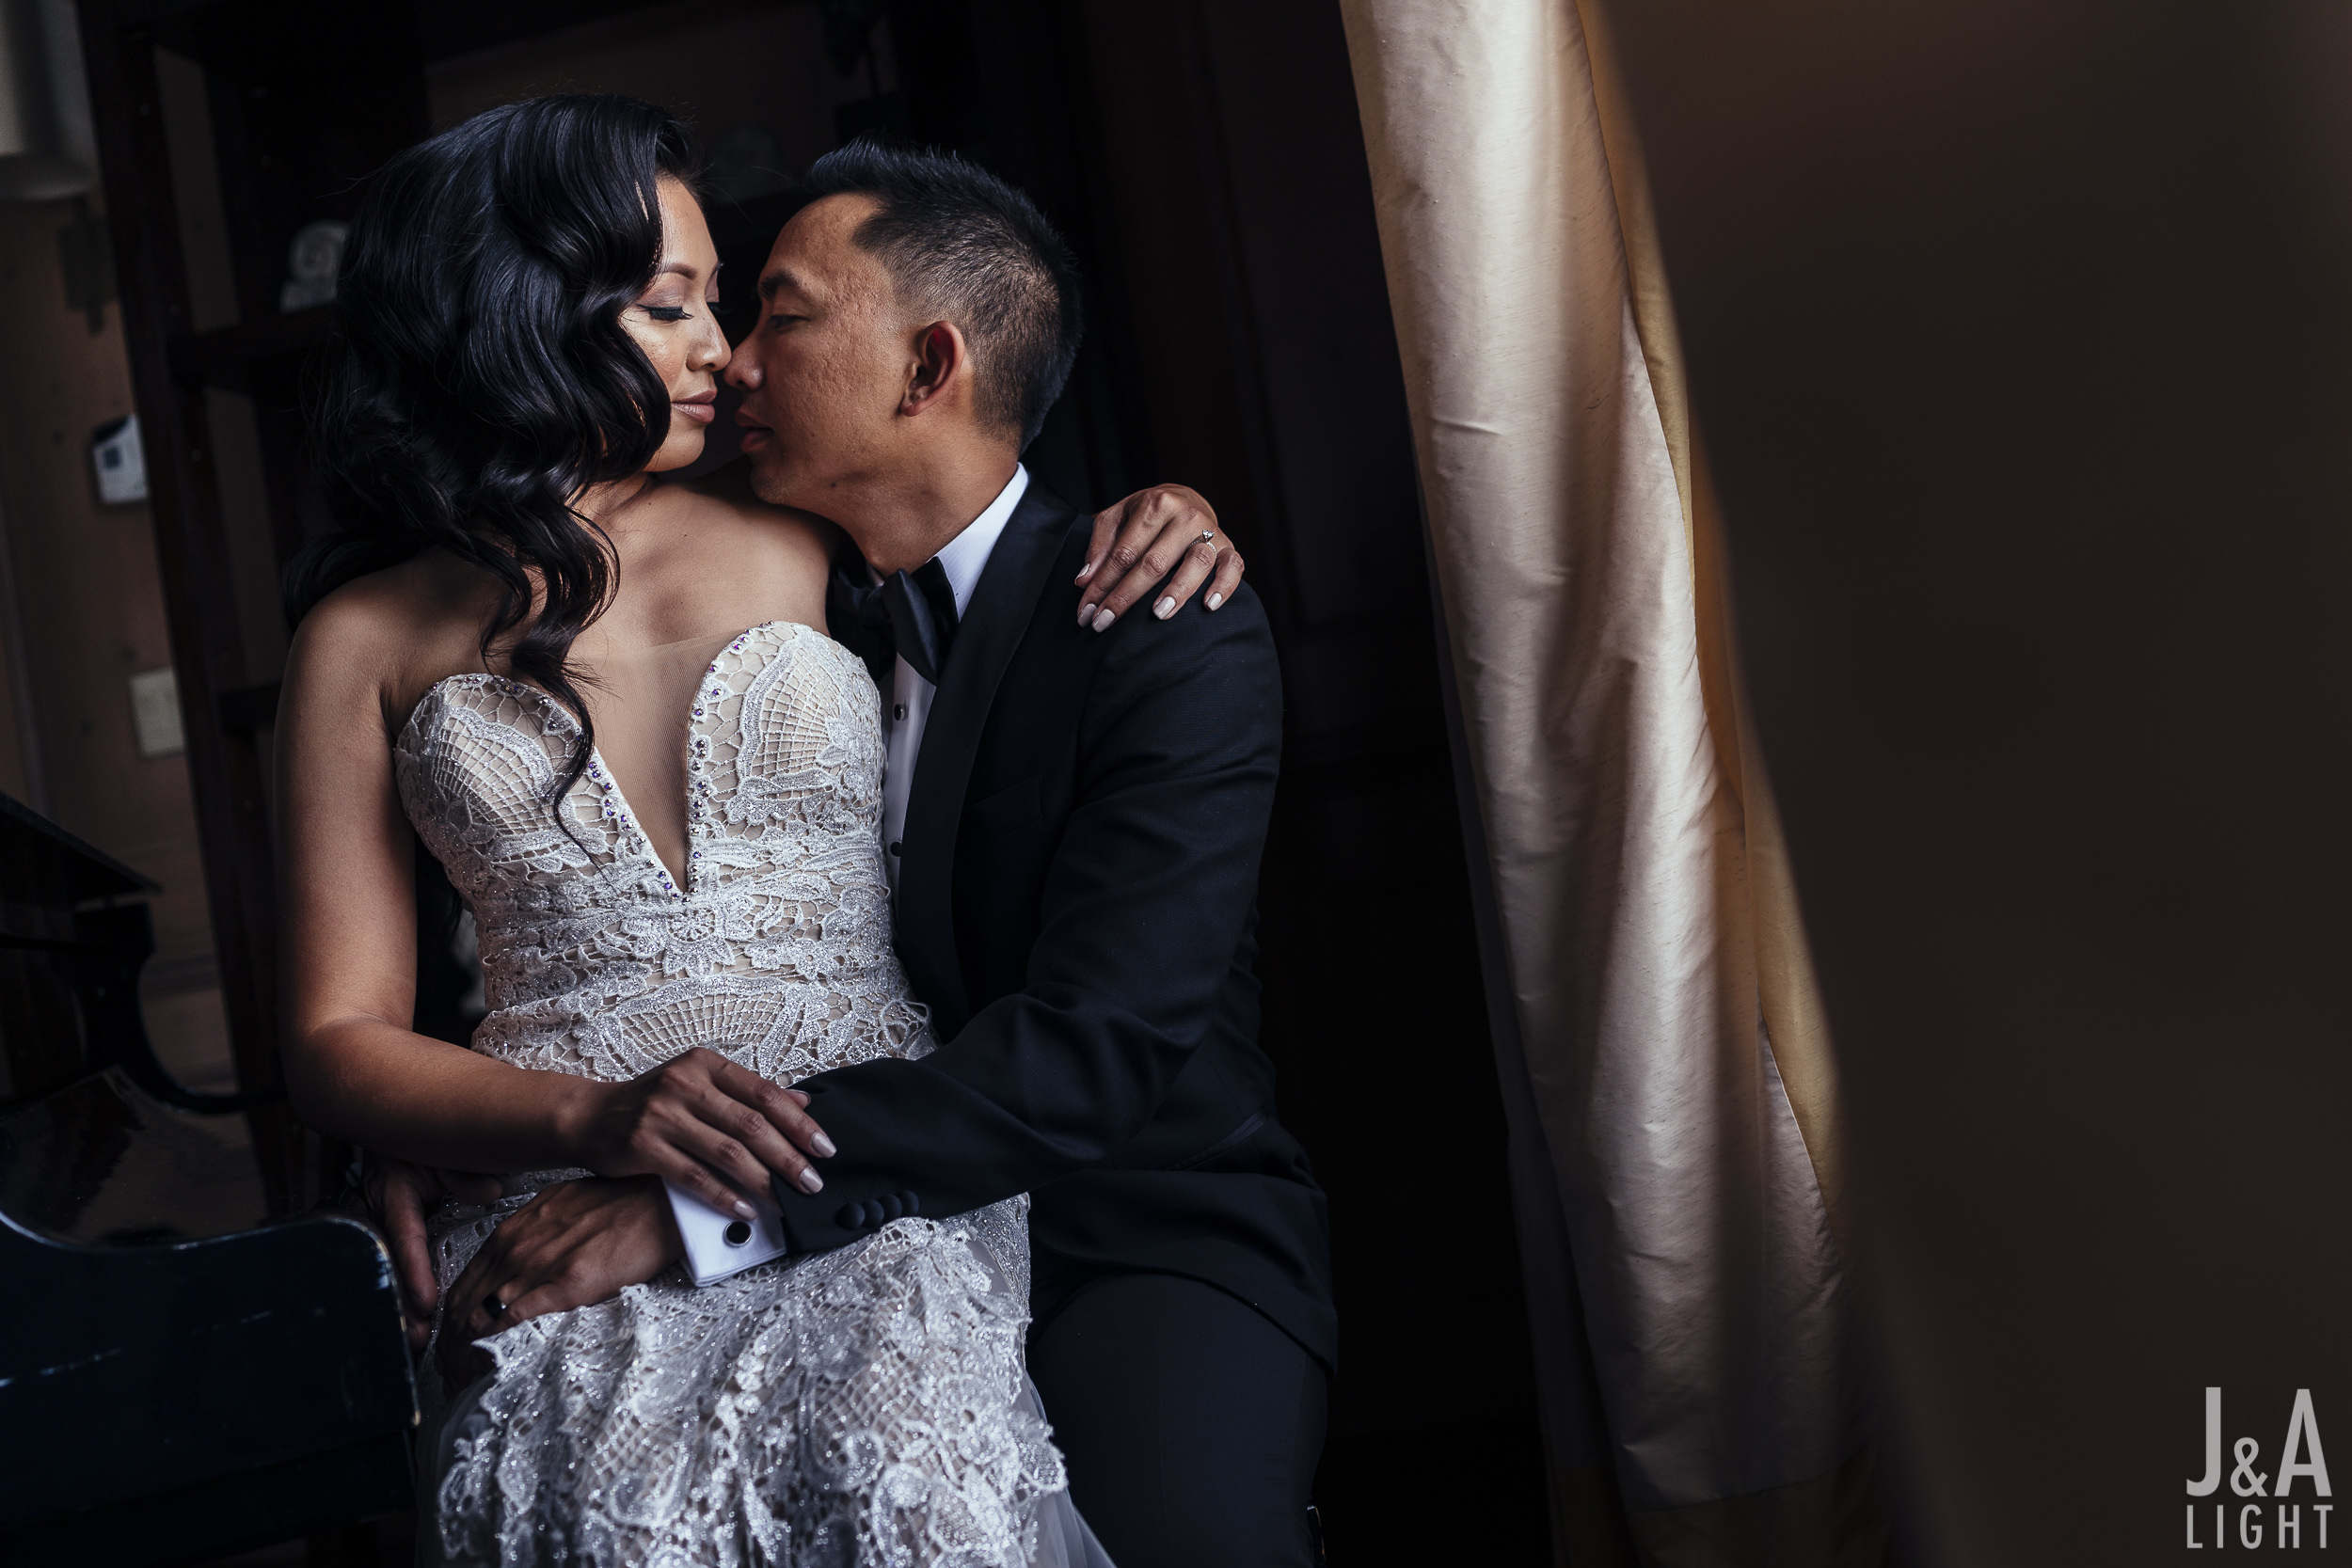 20180722-AdrJohPost-FairmontSanFranciscoWedding_FairmontEngagement-018.jpg